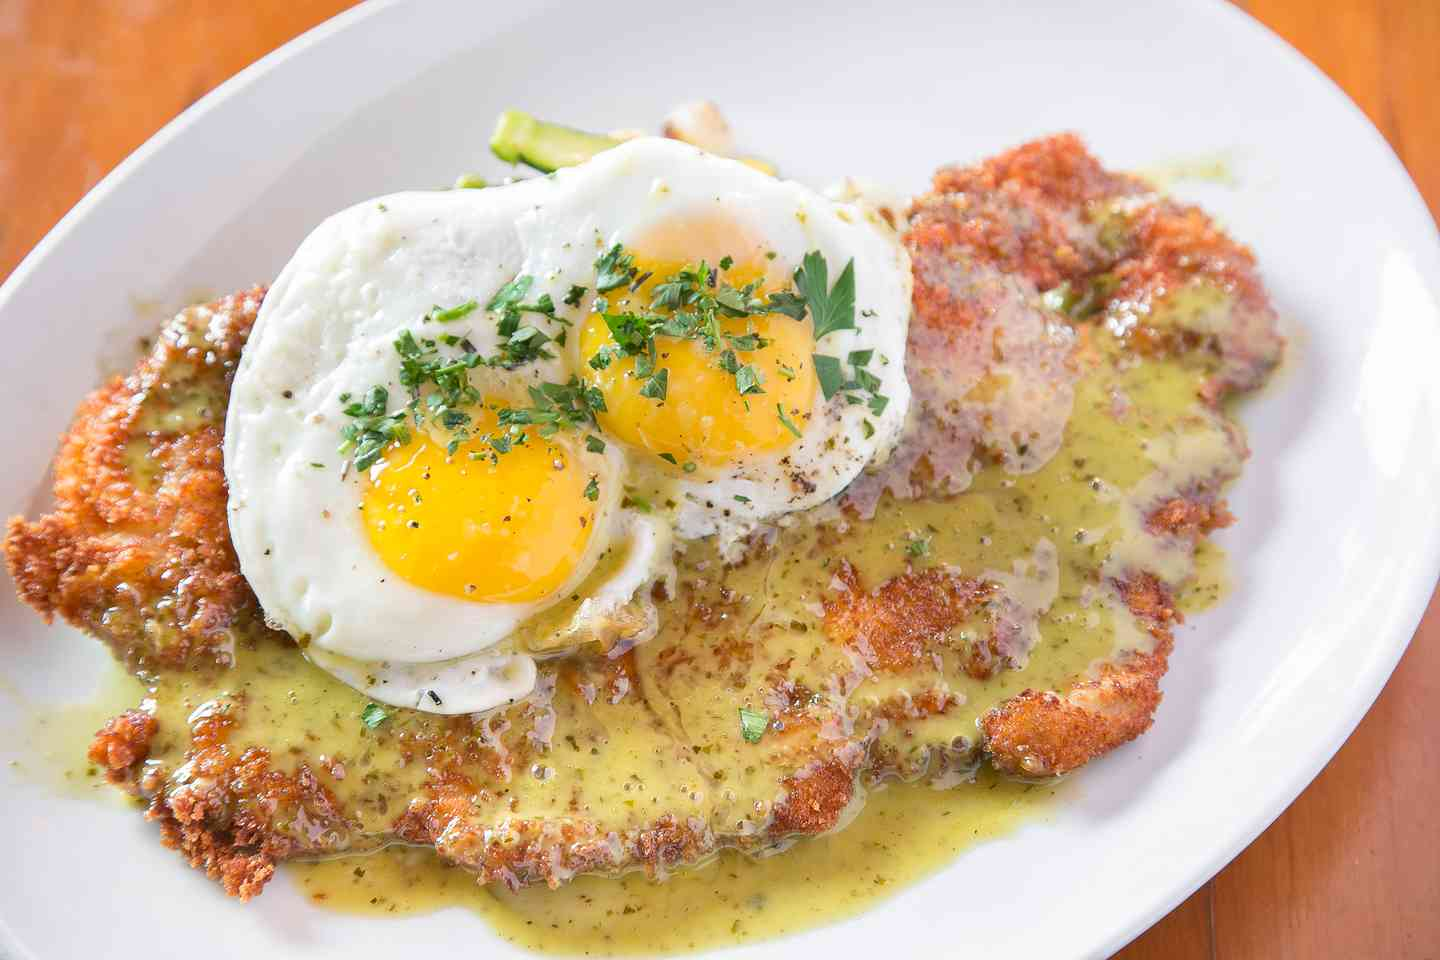 Crispy Duroc Pork Schnitzel With Maitake Mushrooms